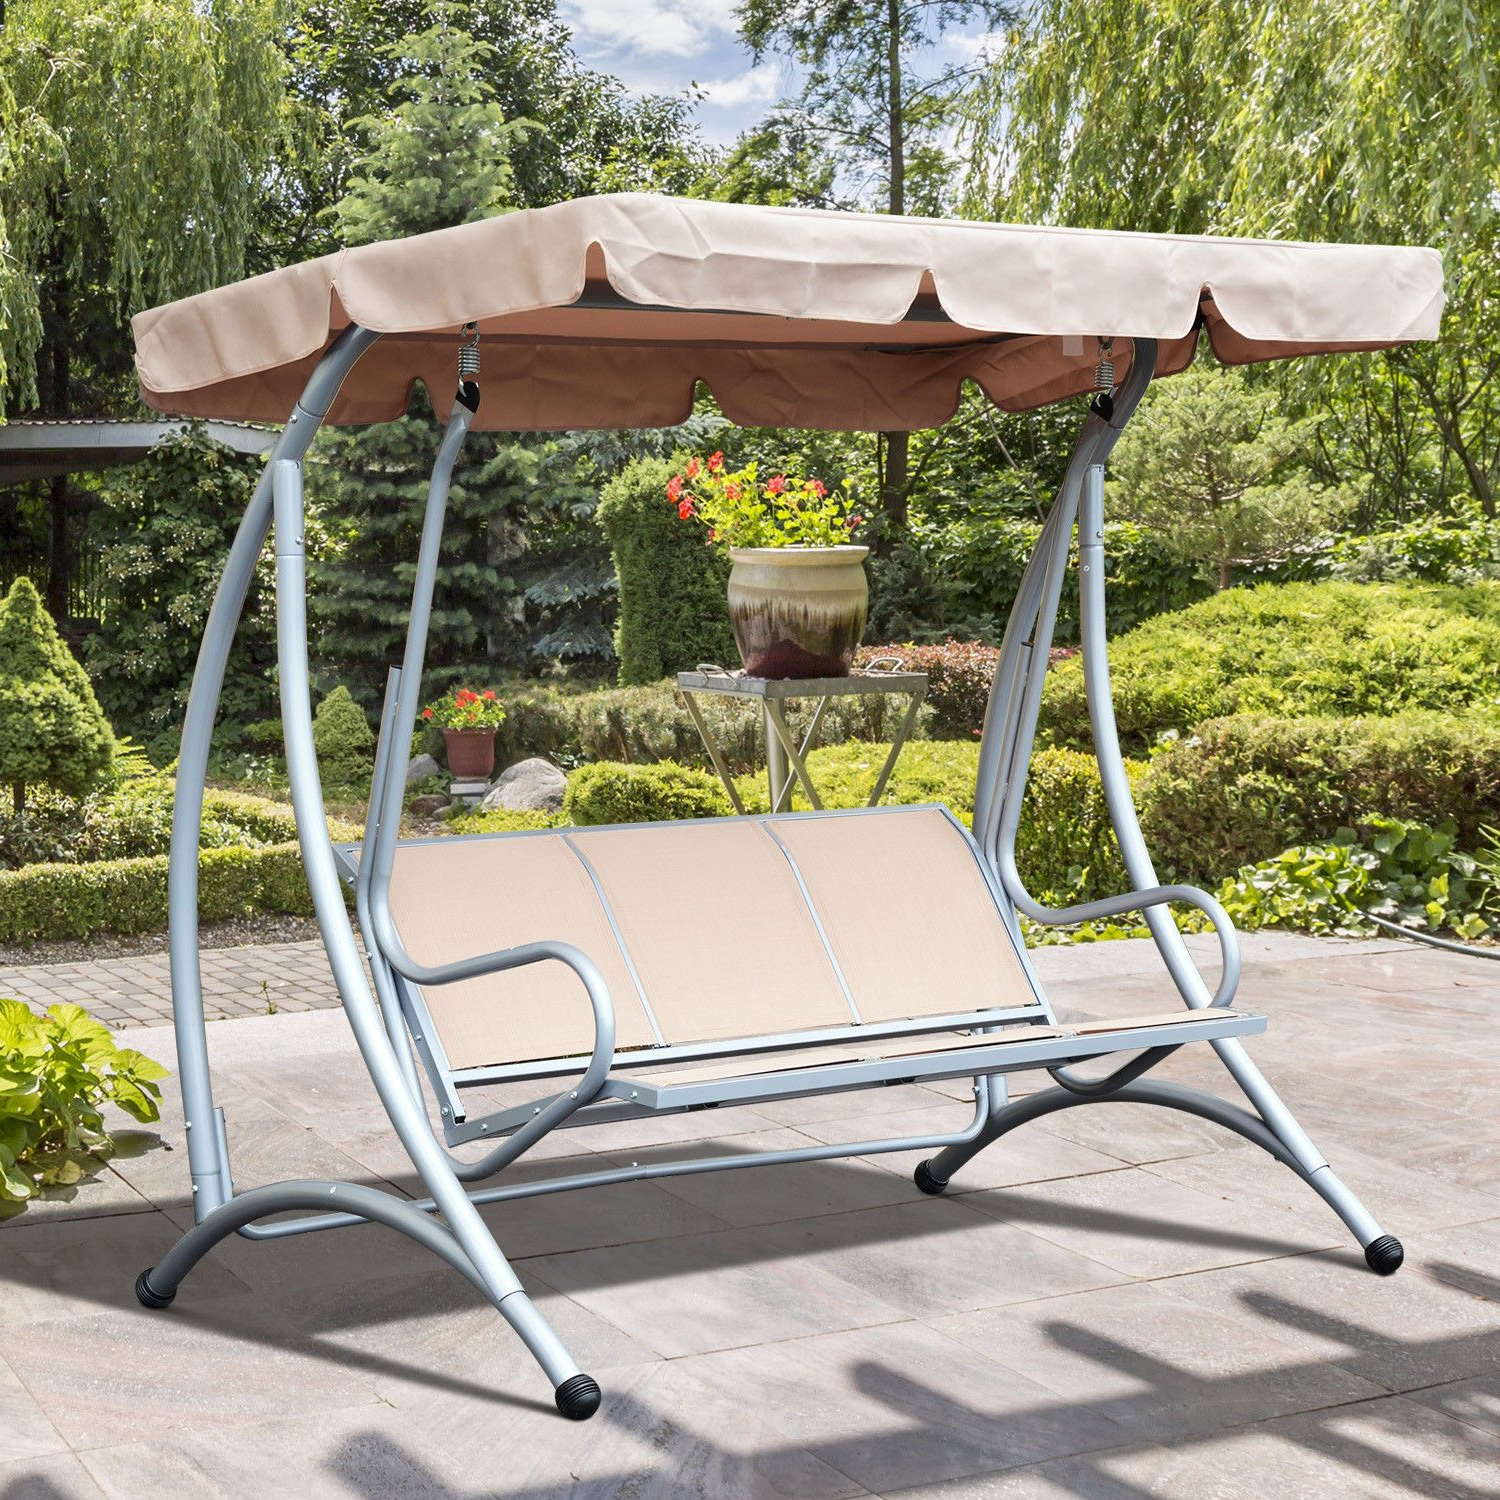 Newest Details About 3 Person Steel Outdoor Patio Porch Swing Chair Inside 2 Person Adjustable Tilt Canopy Patio Loveseat Porch Swings (Gallery 29 of 30)